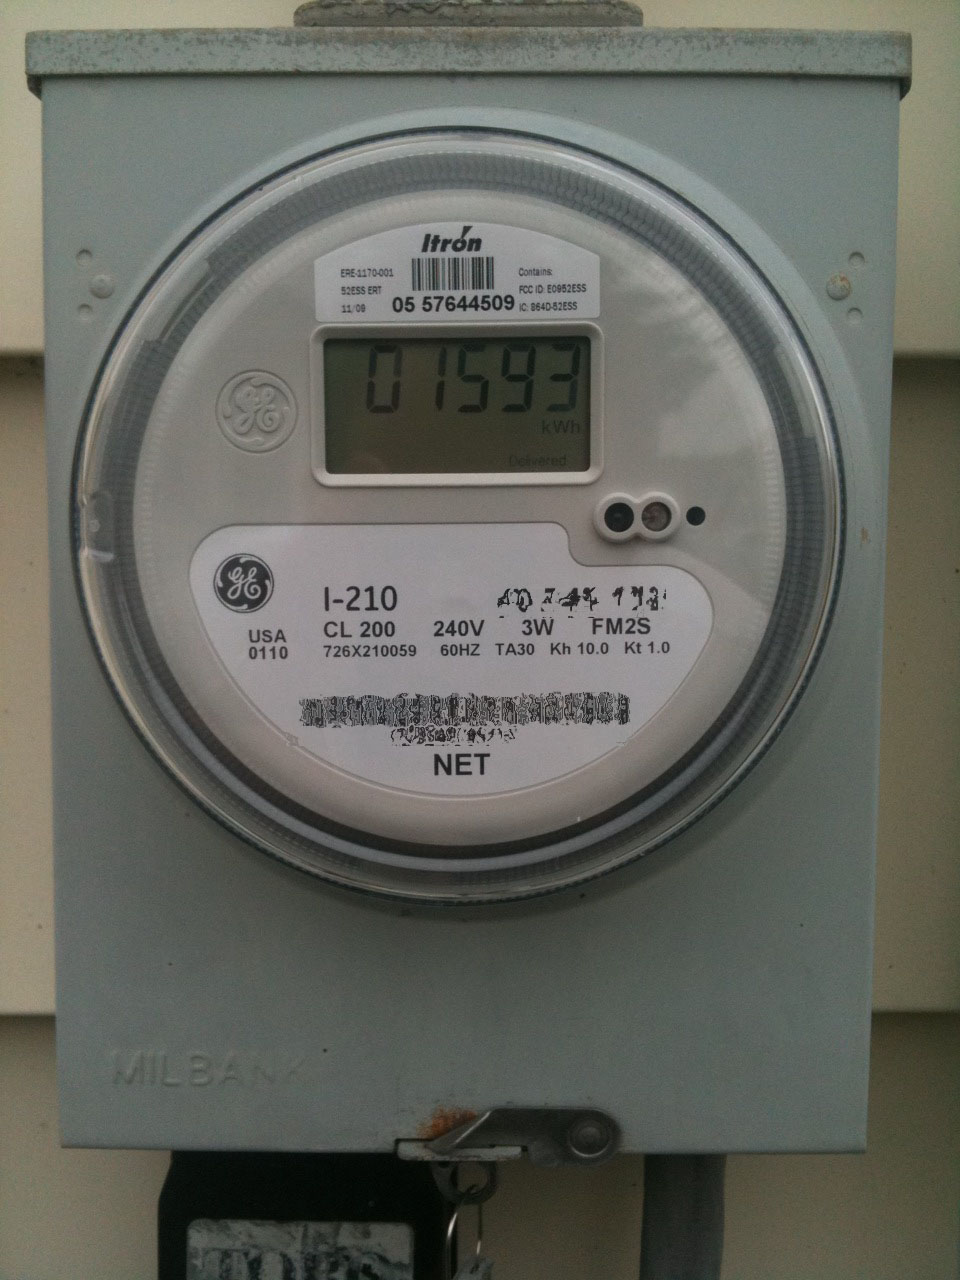 Secondary Electric Meter : Going for solar new electric meter step — green